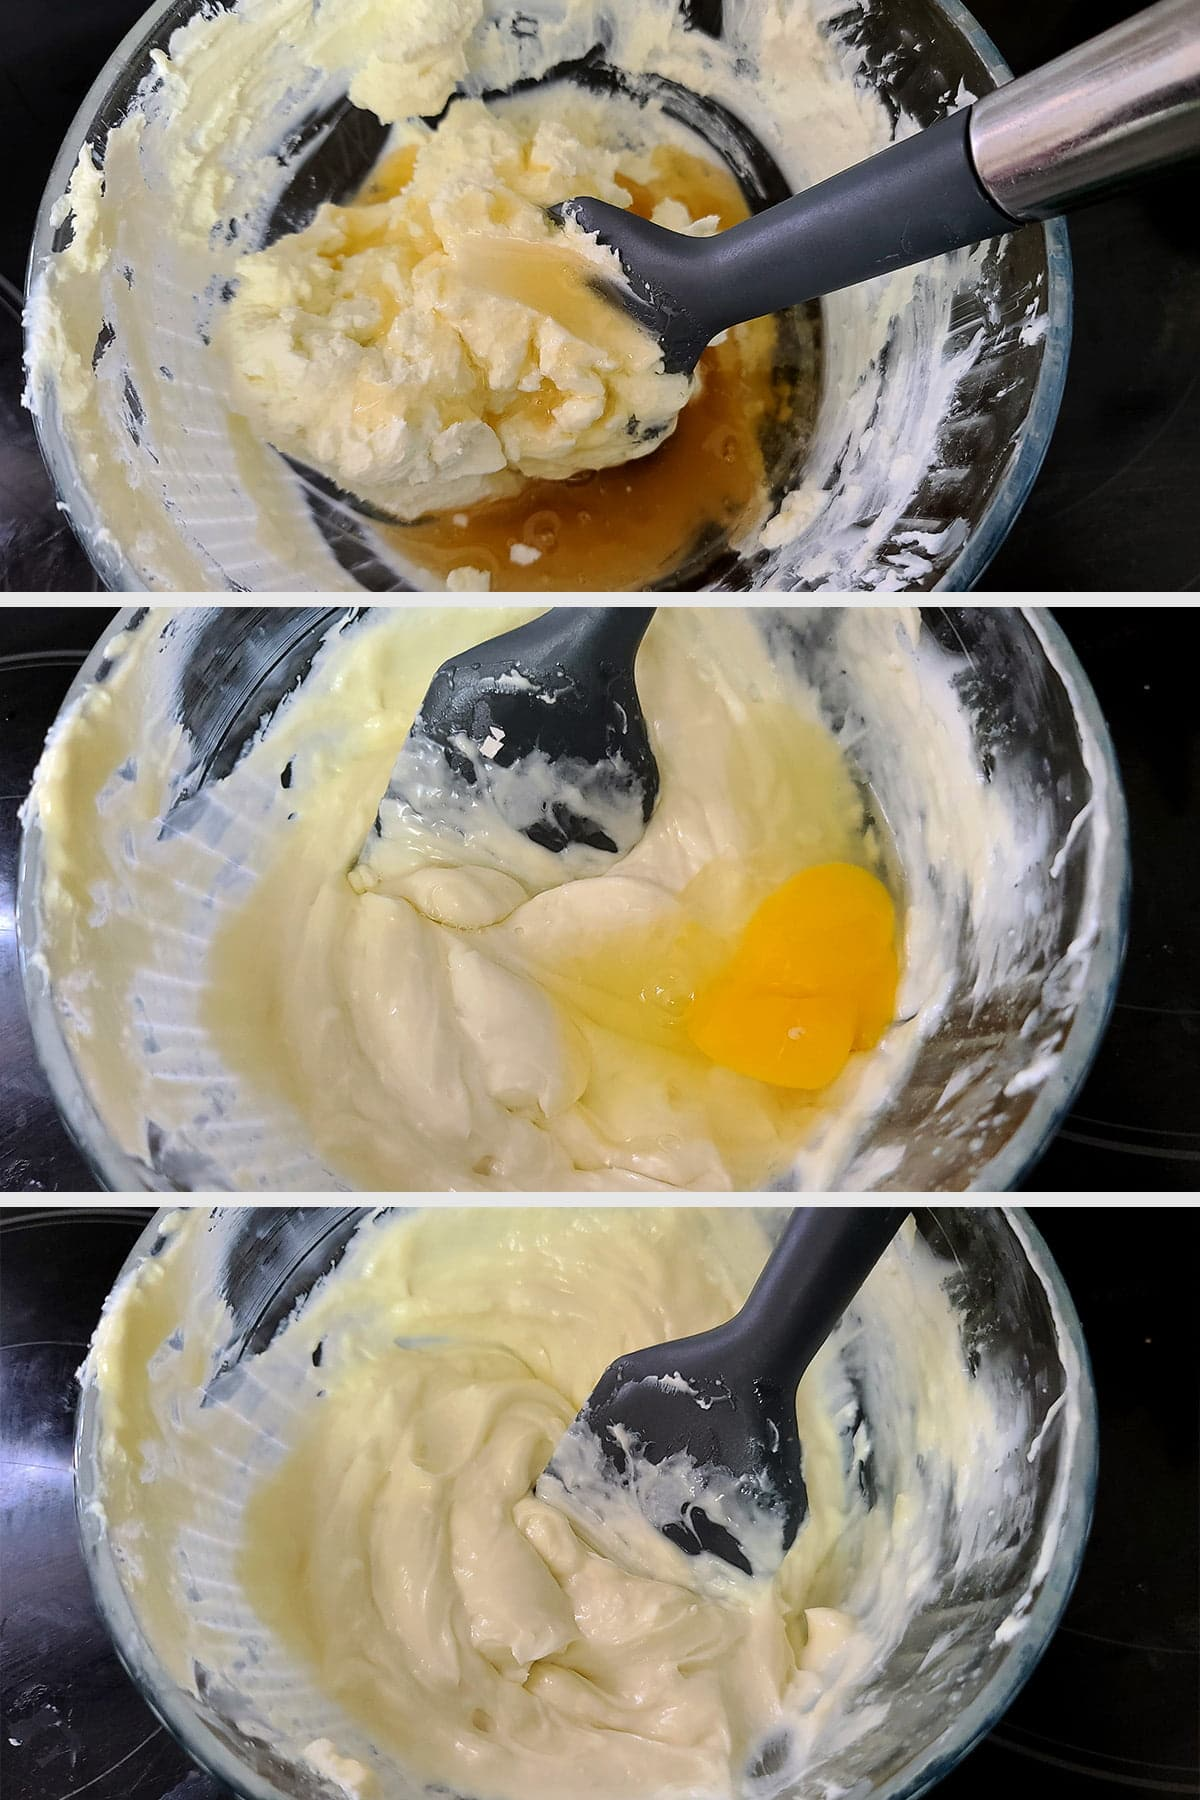 A 3 part compilation image showing goat cheese, cream cheese, and honey being mixed together until smooth,